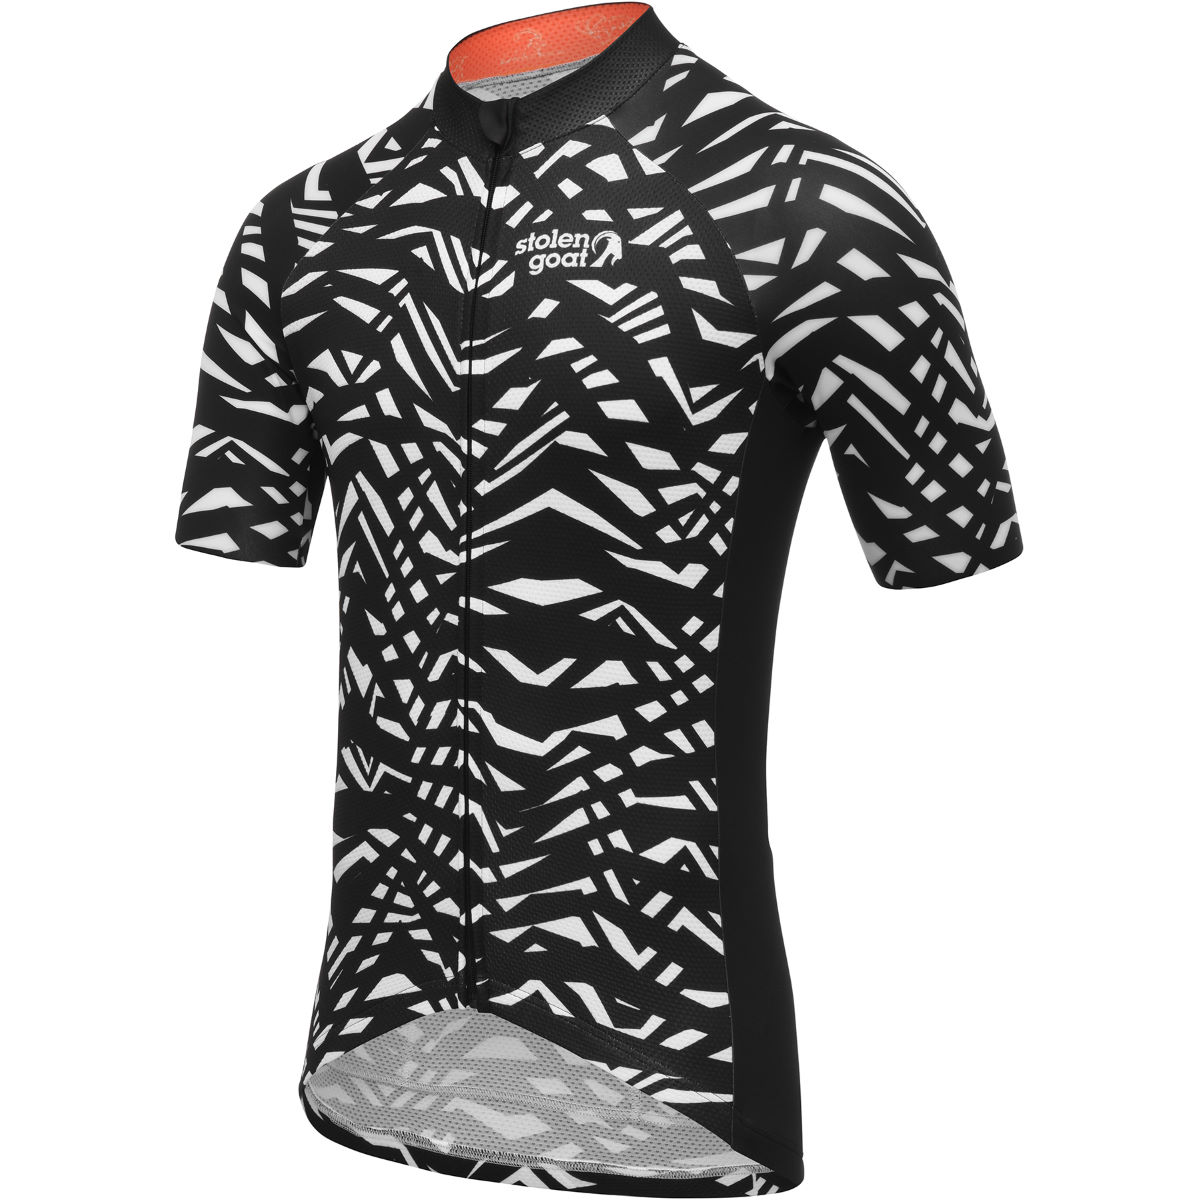 Stolen Goat Bodyline Surface Short Sleeve Jersey - Maillots